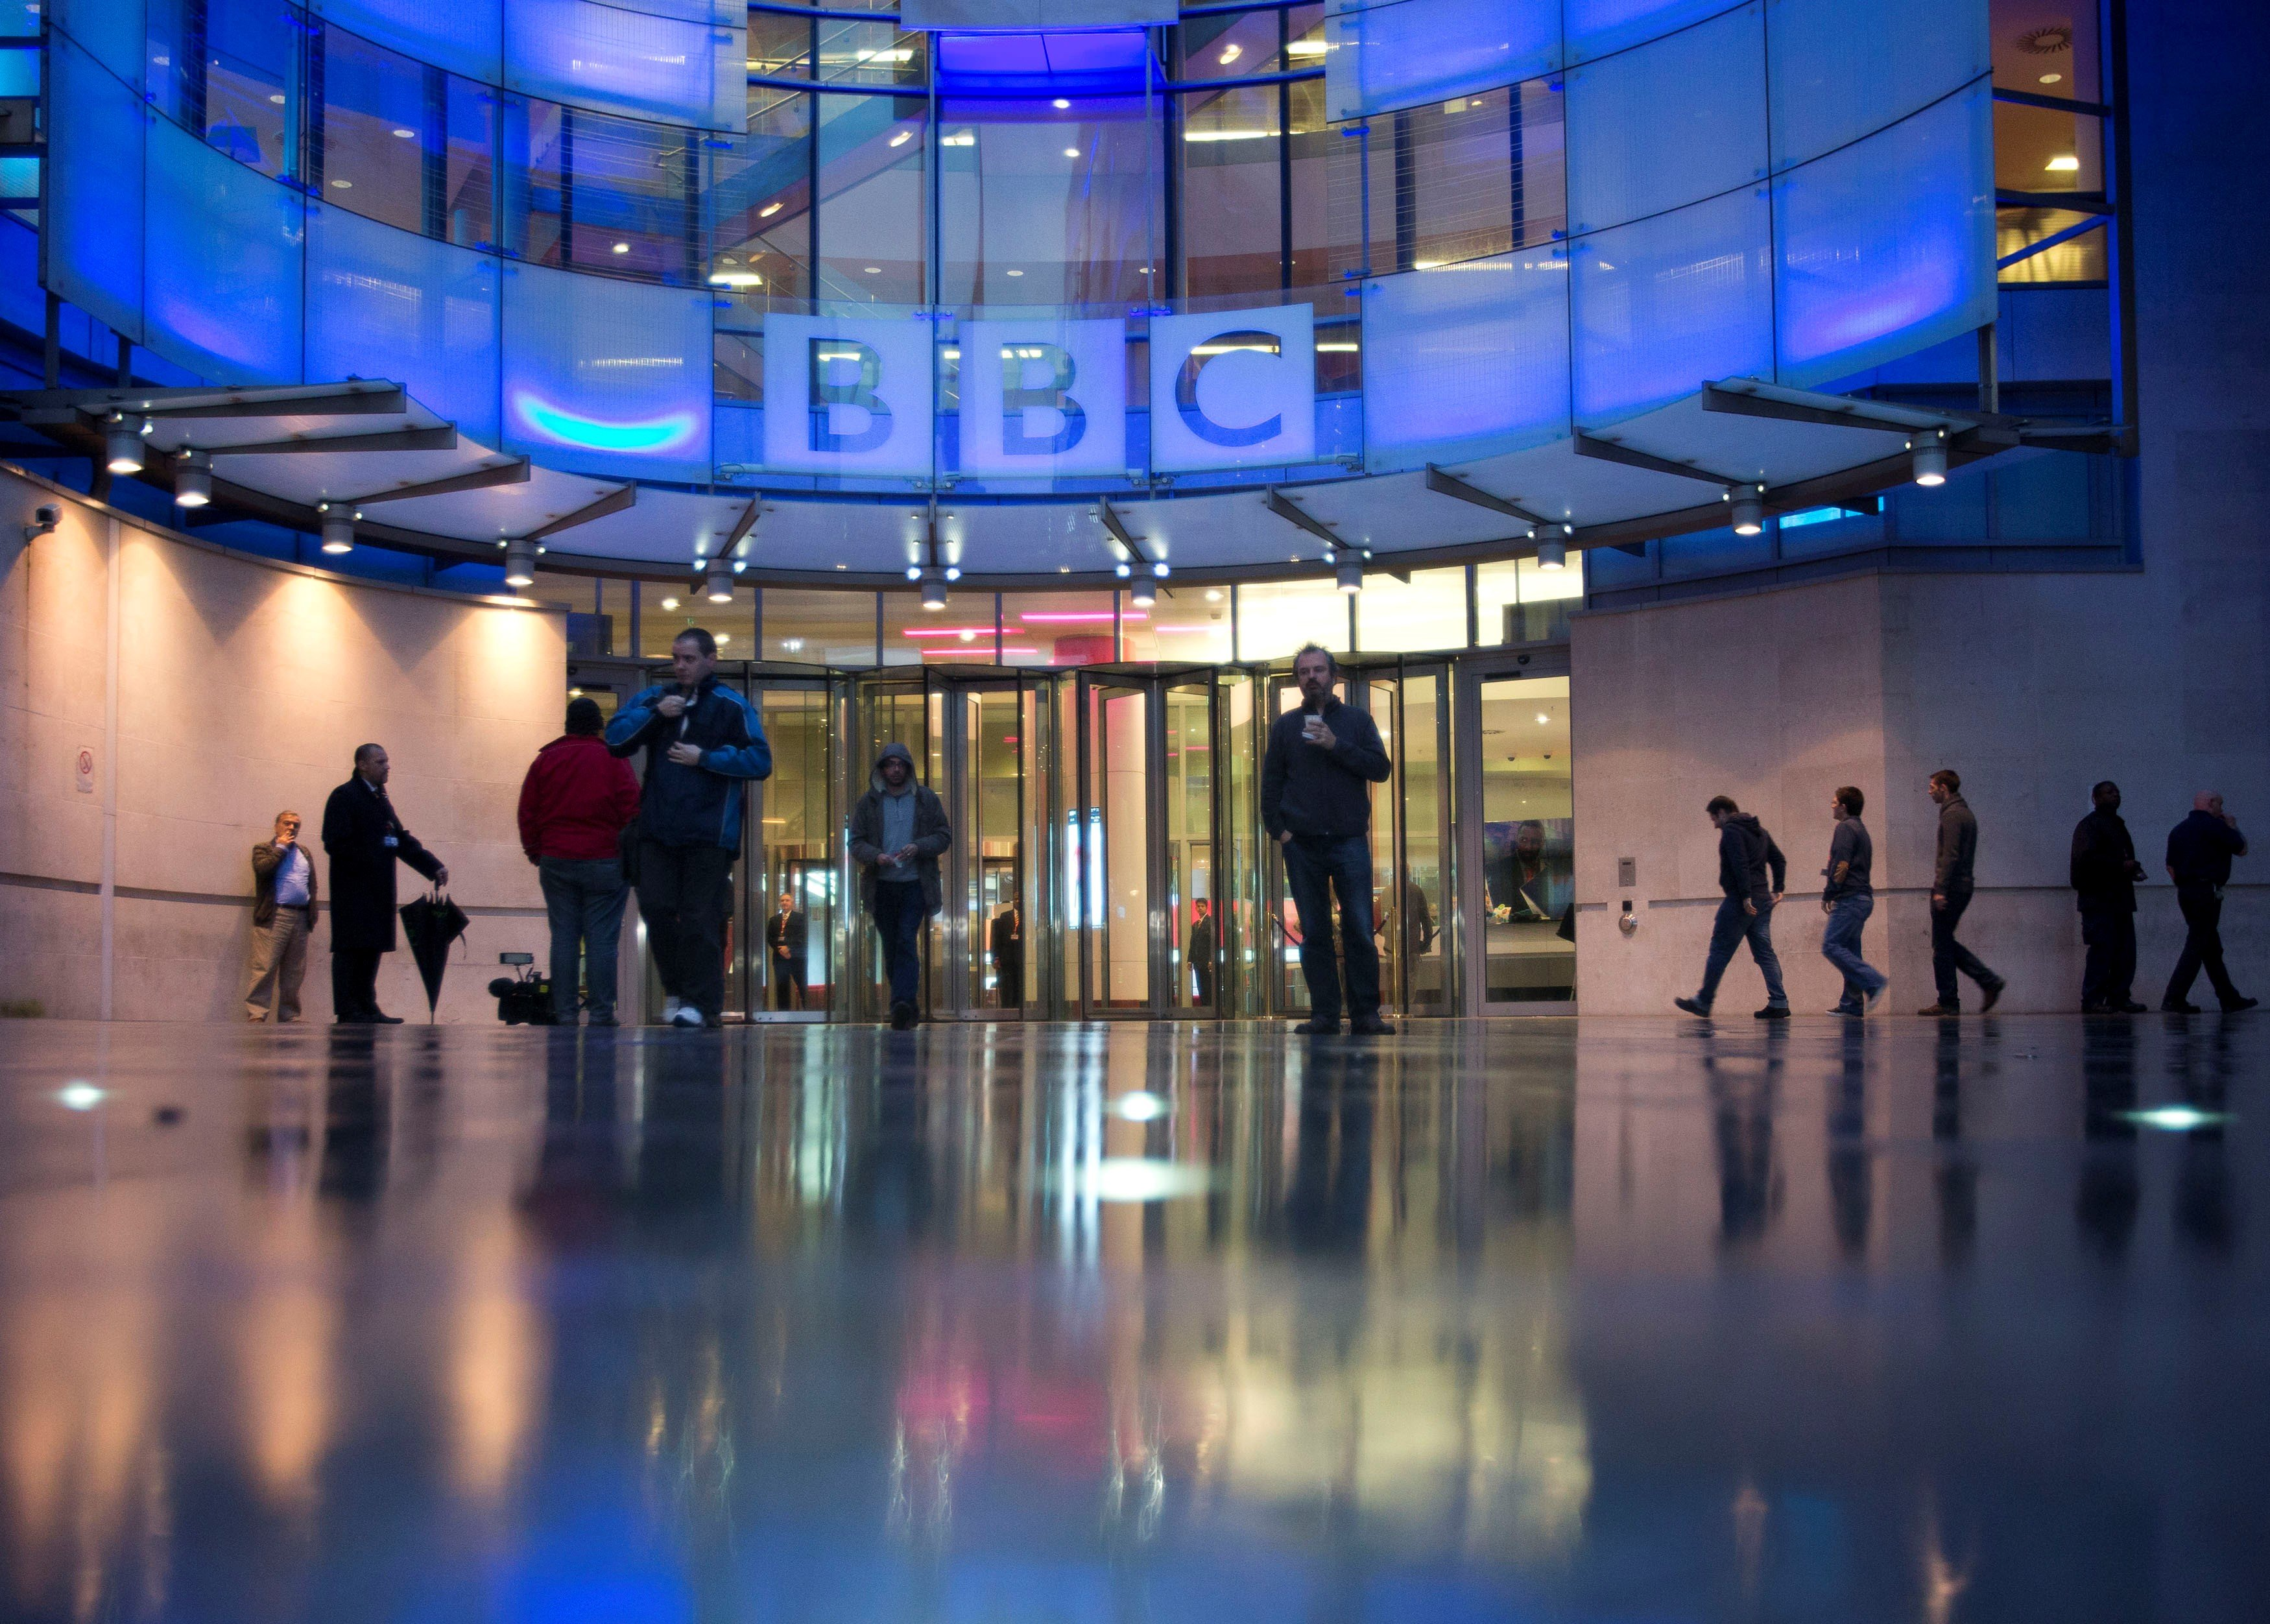 People arrive at, and leave, the BBC headquarters (Reuters)